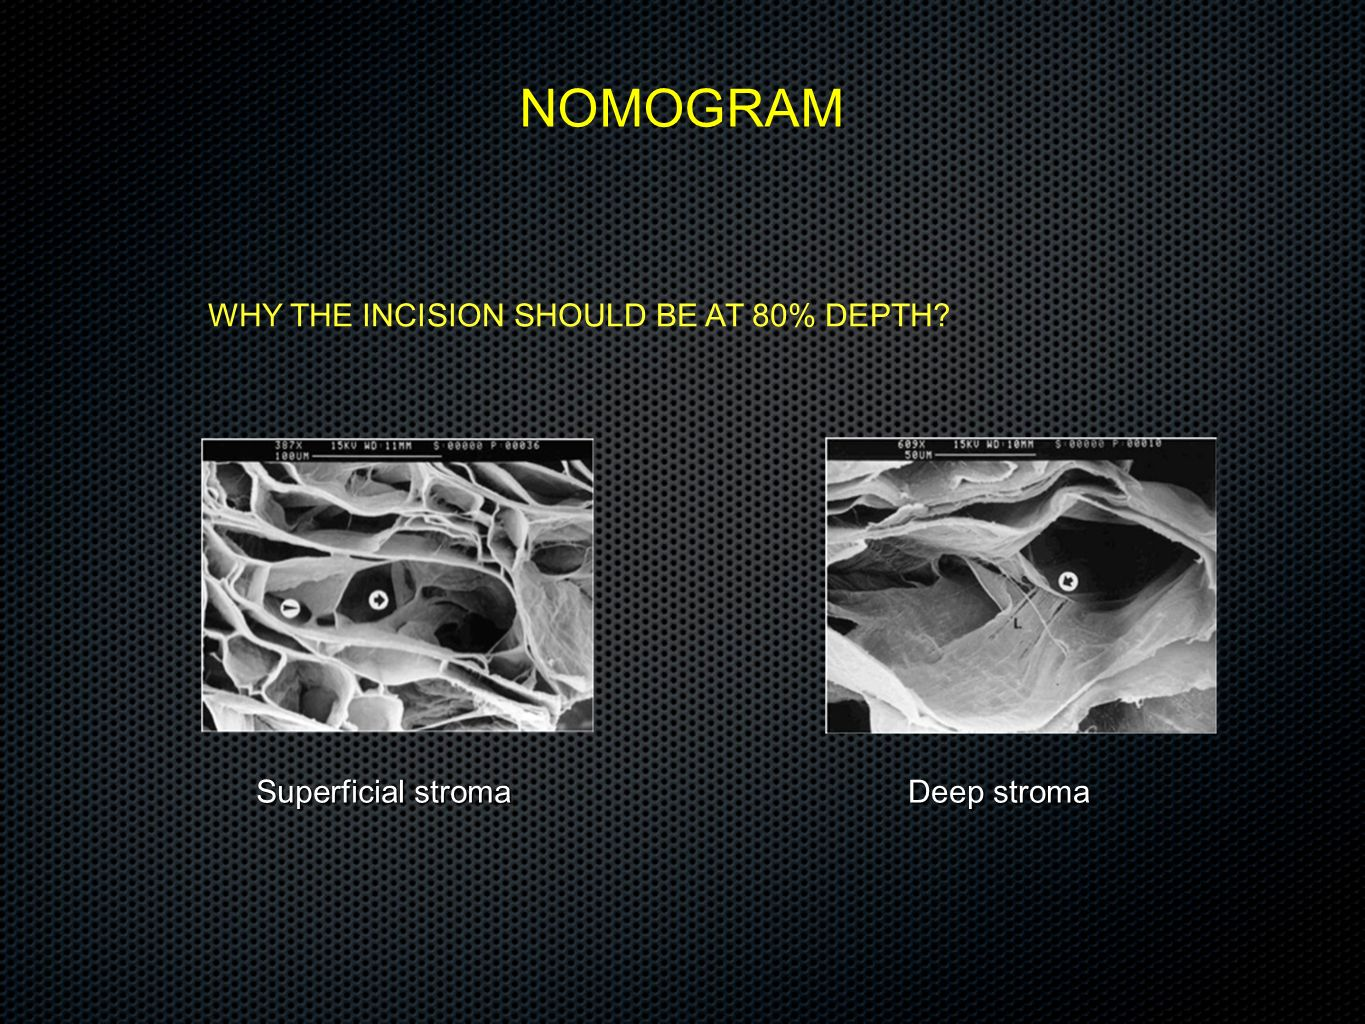 WHY THE INCISION SHOULD BE AT 80% DEPTH? NOMOGRAM Superficial stroma Deep stroma